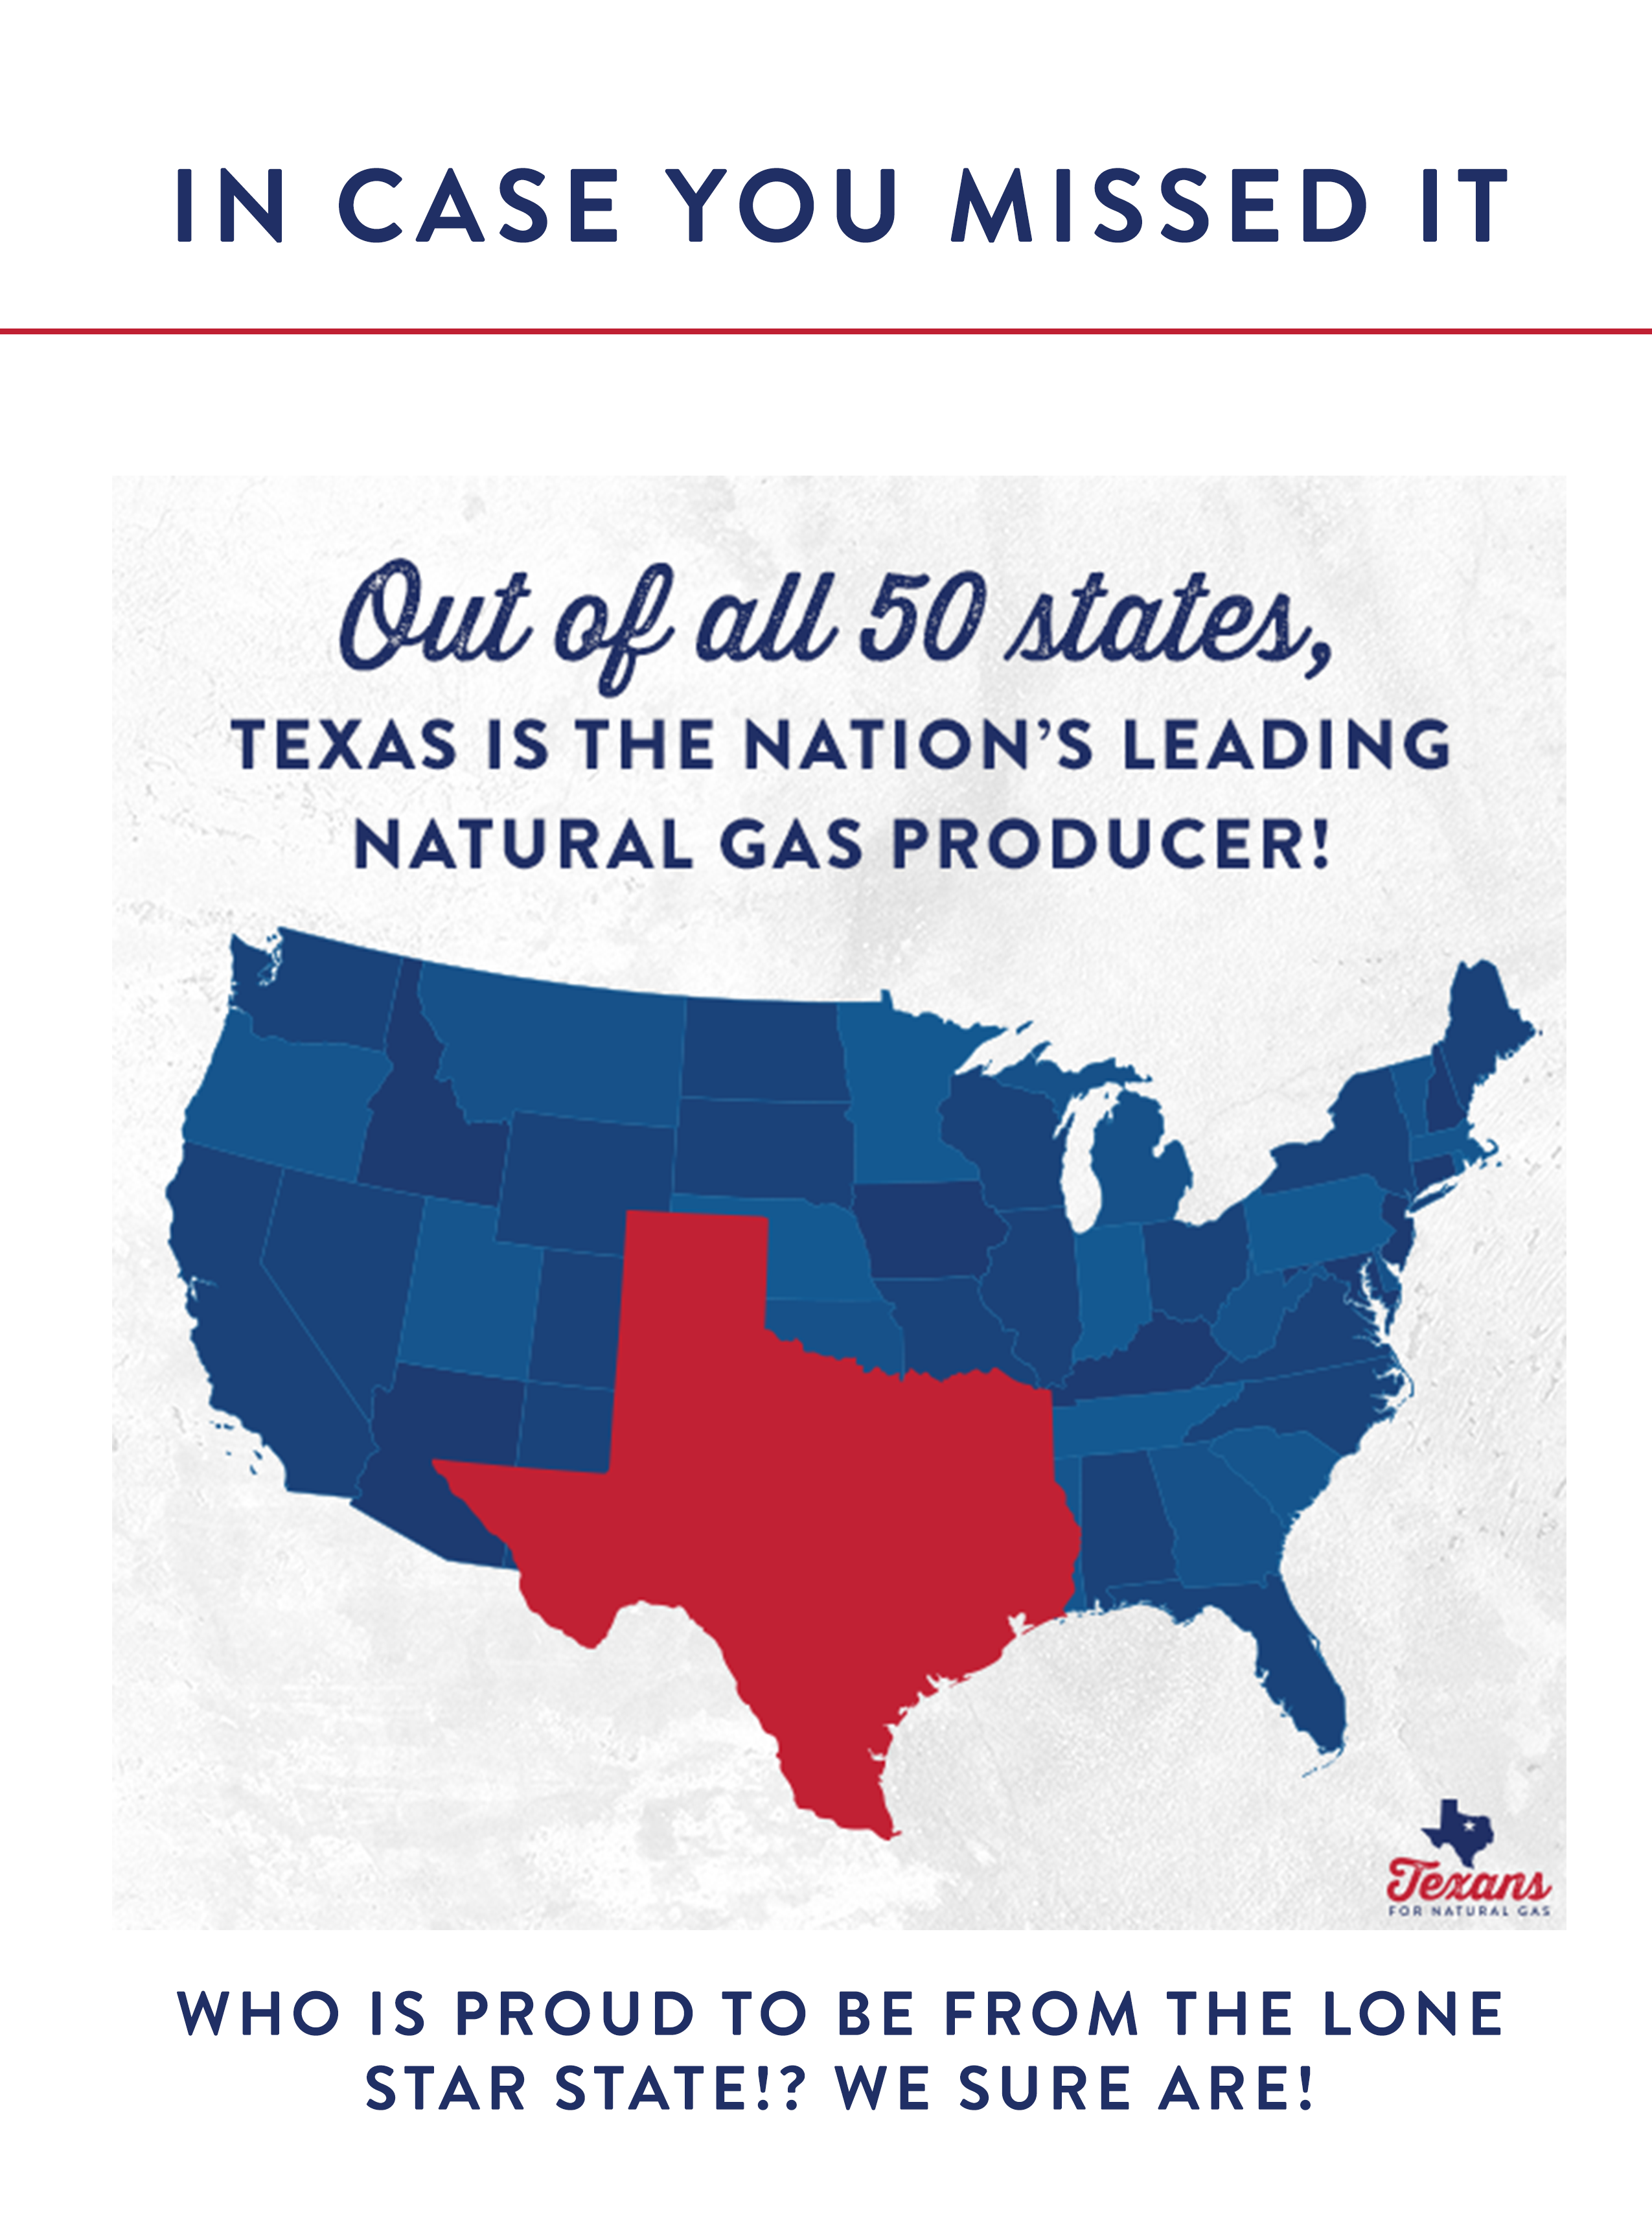 Texas is the top producer of oil and gas!